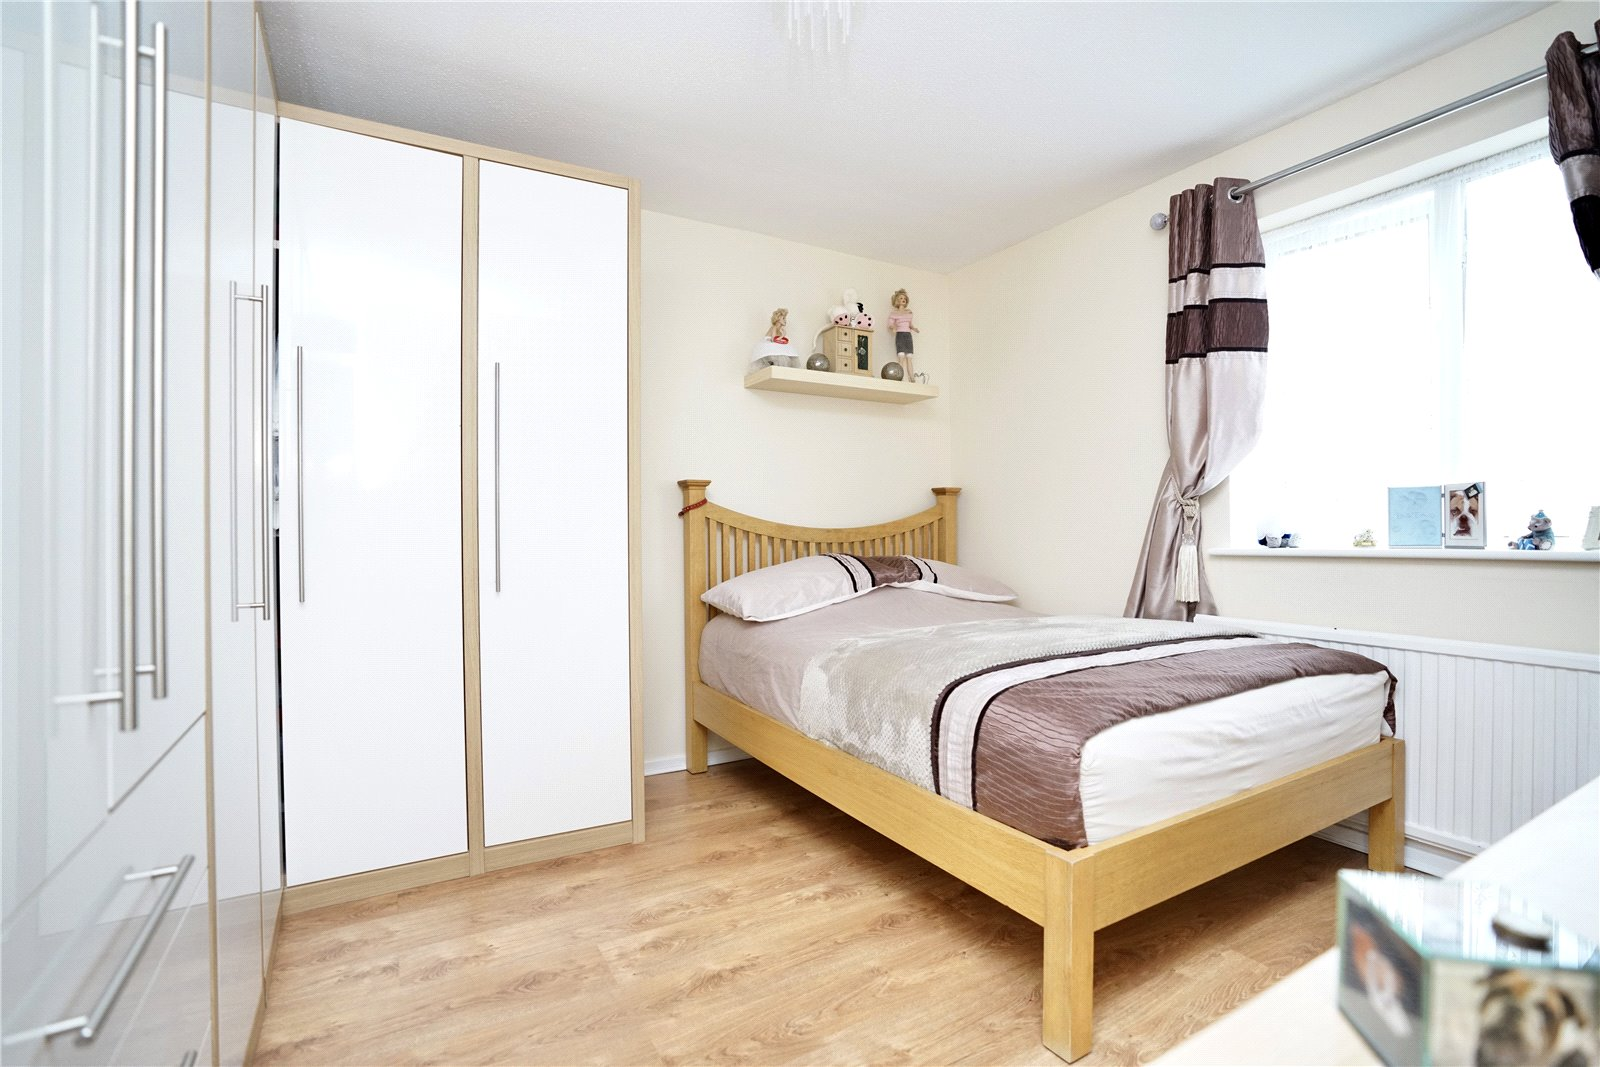 3 bed house for sale in Countess Close, Eaton Socon 7